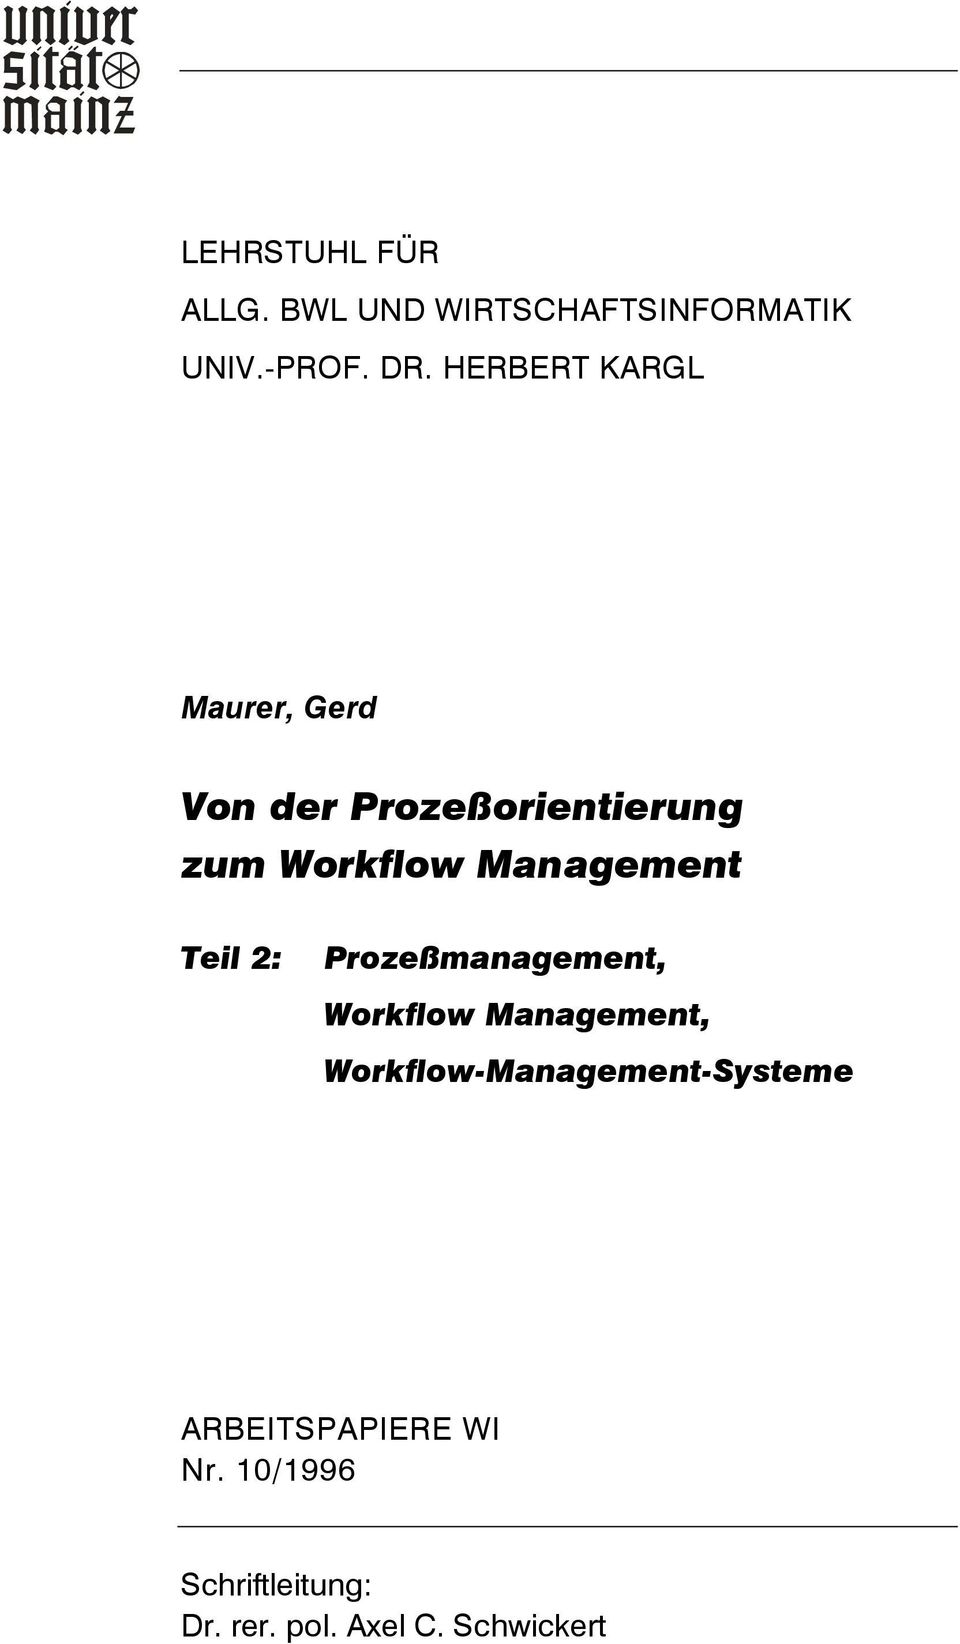 Management Teil 2: Prozeßmanagement, Workflow Management,